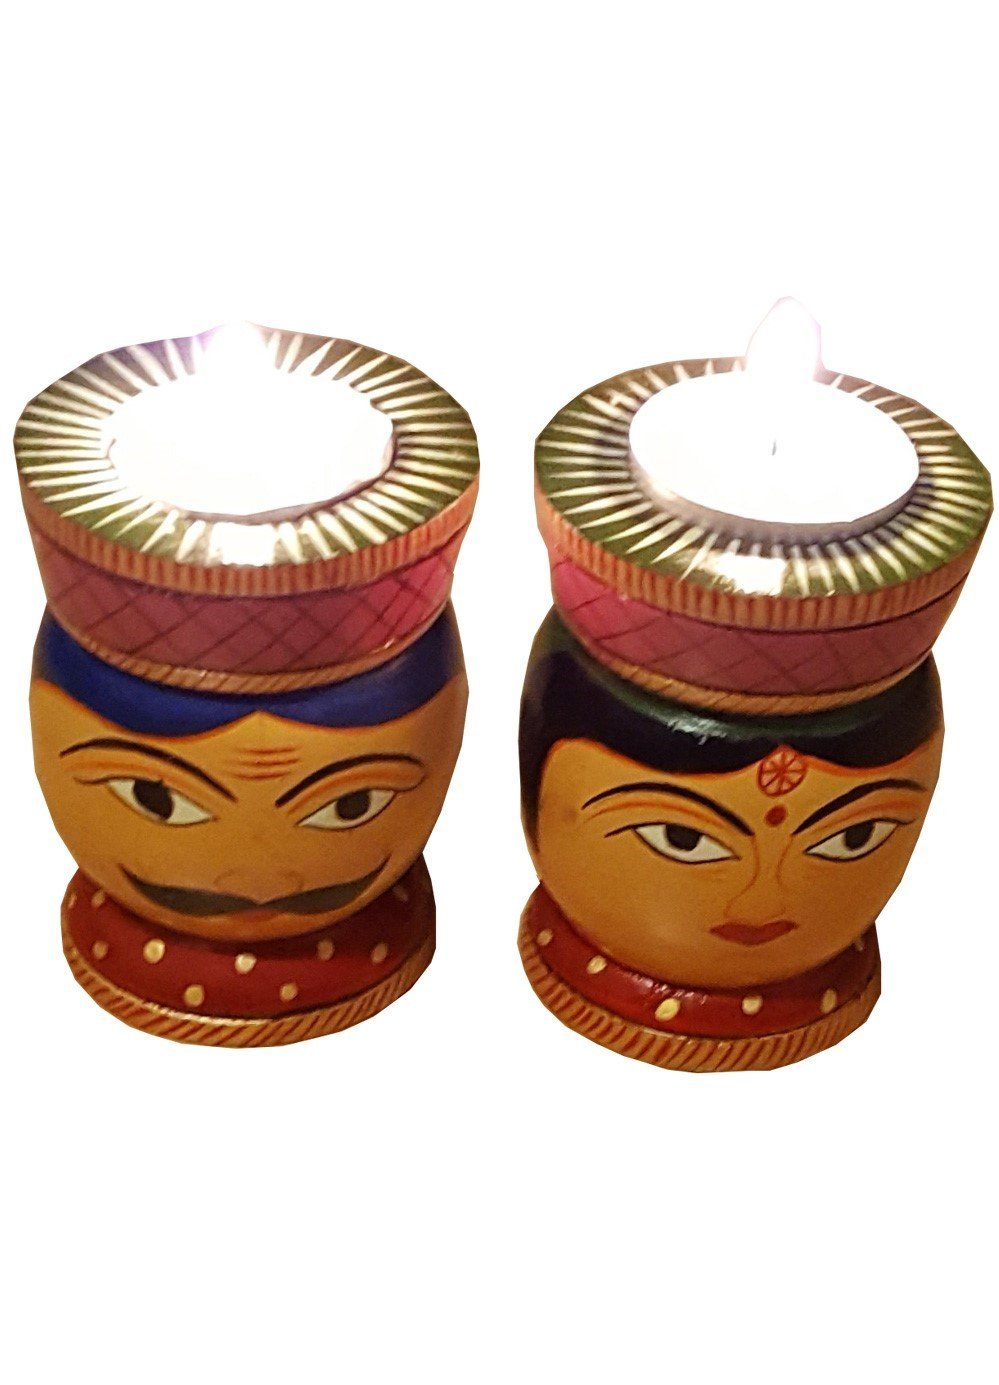 Hand Carved Wooden Tealight Holders